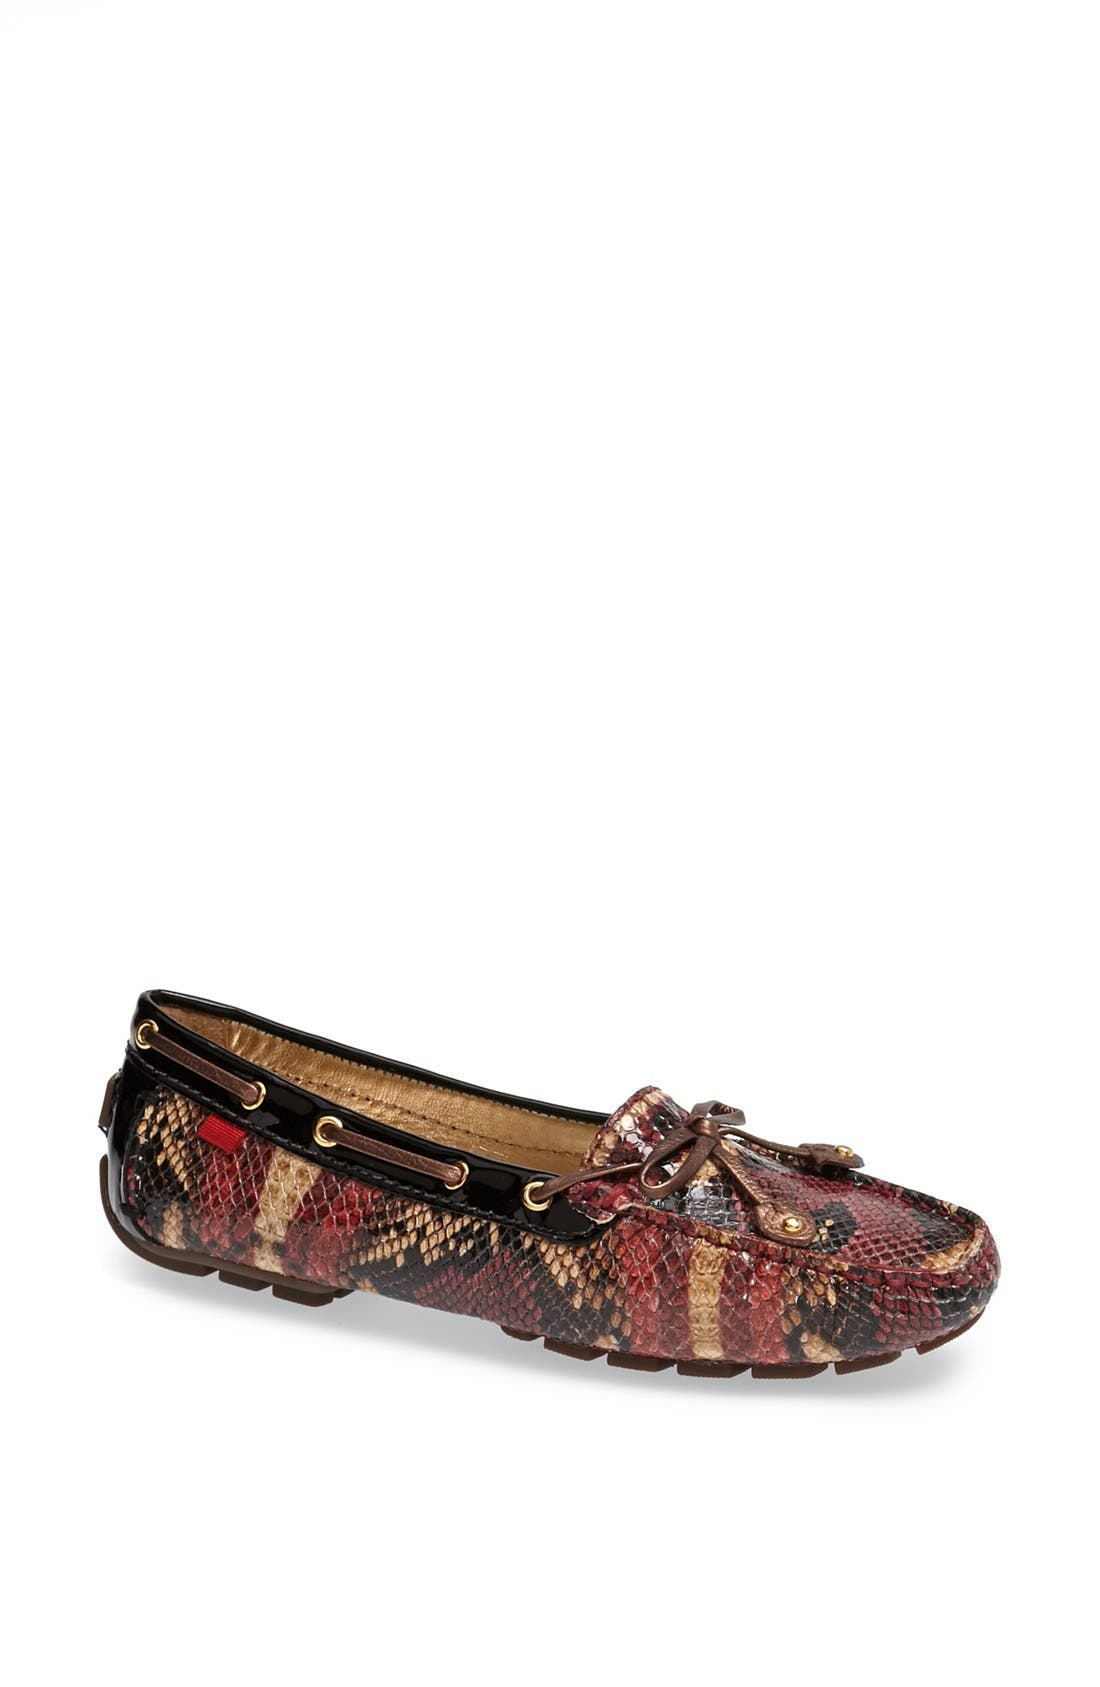 Alternate Image 1 Selected - Marc Joseph New York 'Cypress Hill' Loafer